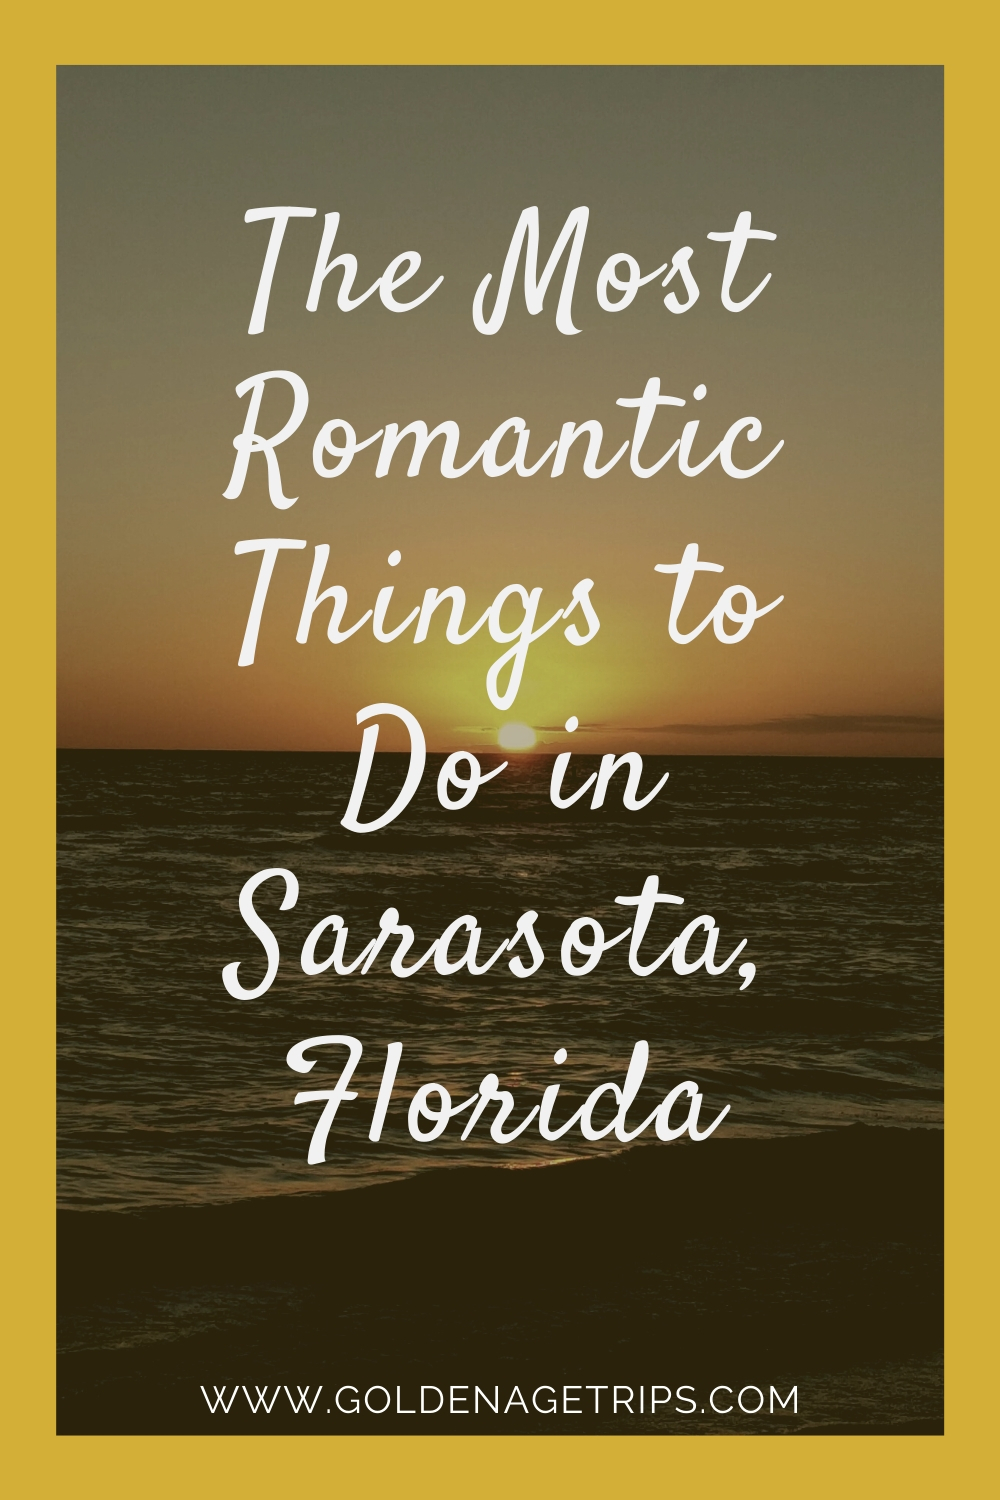 Looking for date ideas in Sarasota, Florida? Then, don't miss The Most Romantic Things to Do in Sarasota, Florida (USA) and its surrounding areas. From beautiful sunsets to outdoor concerts, and even cheese classes we hope our suggestions help you plan a great date. #sarasota #romantic